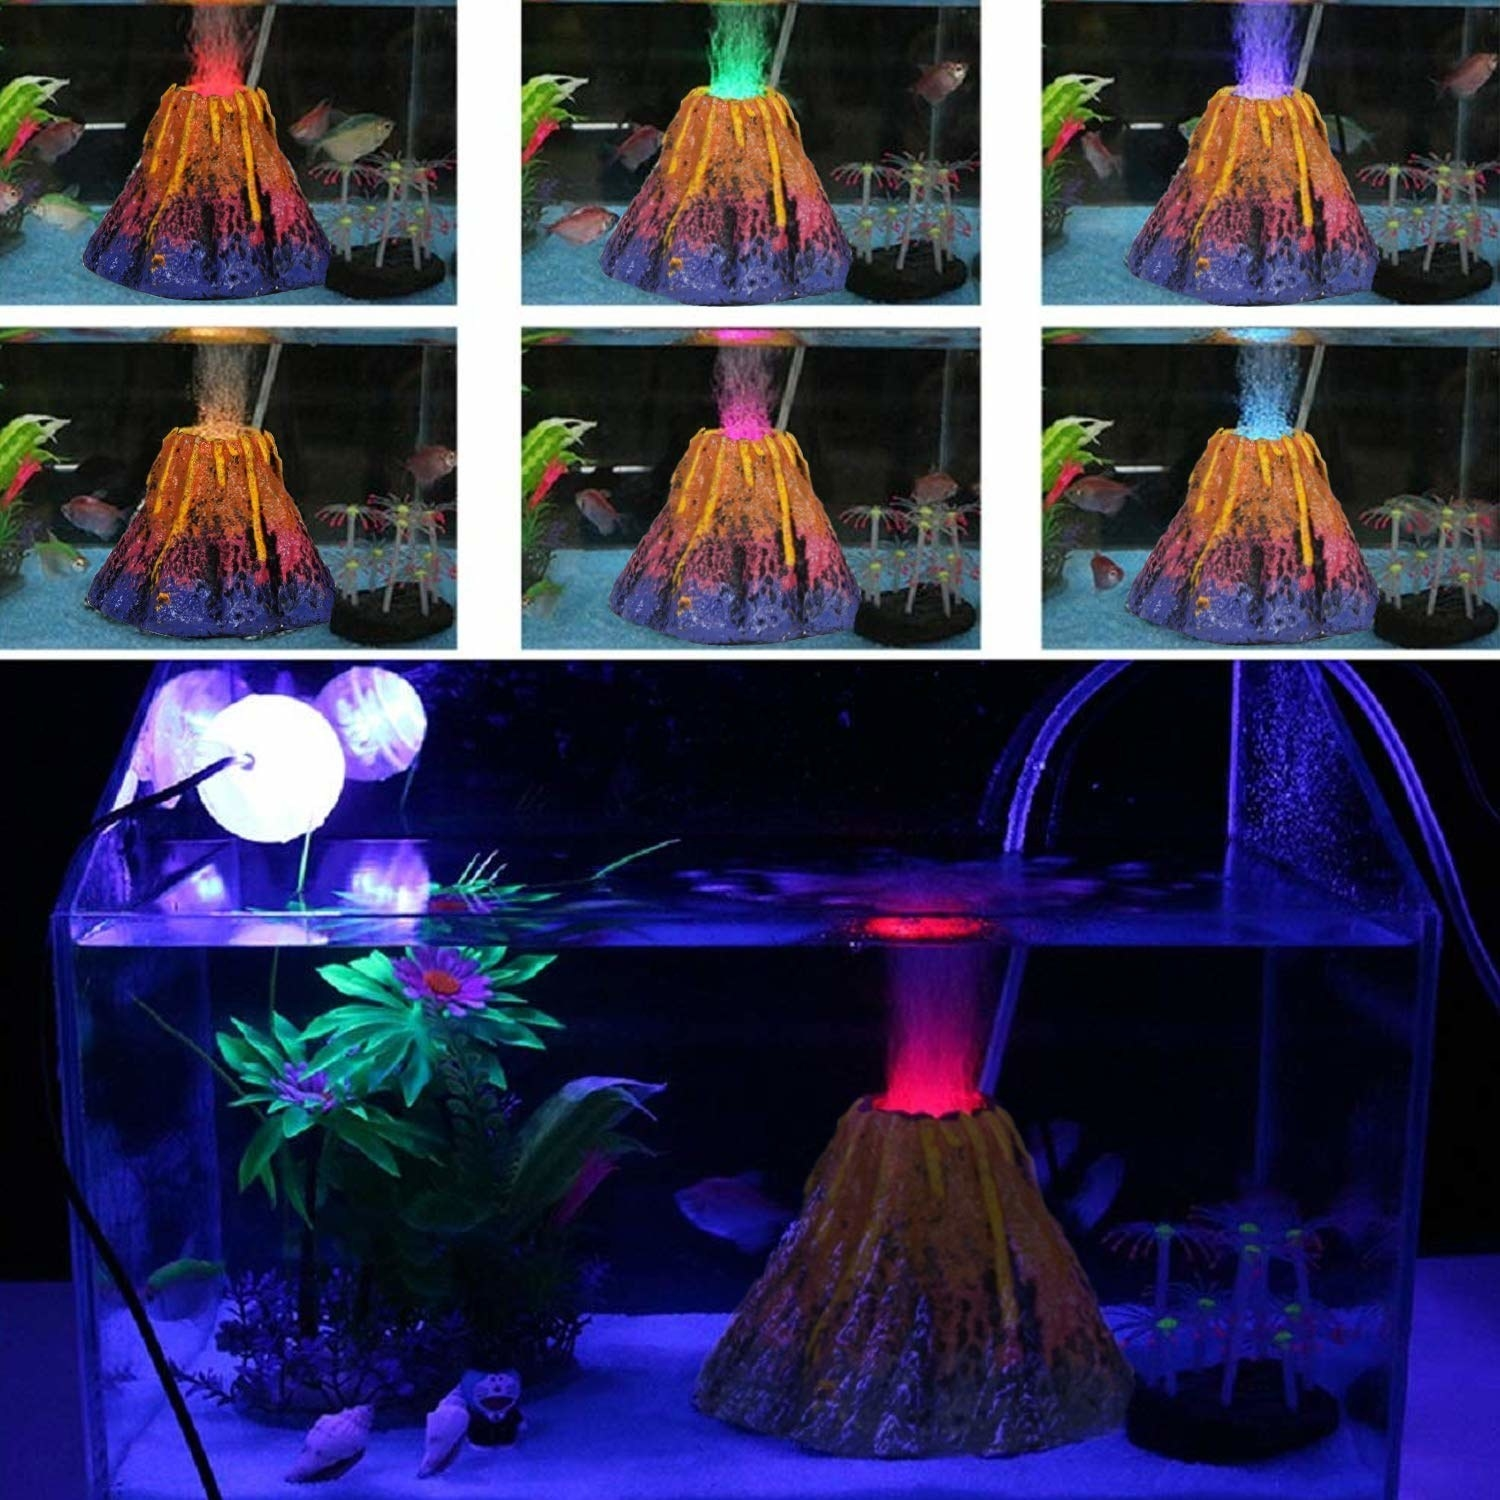 Volcano lamp placed inside a fish tank, with smaller images on the top showing the various colours of the LED lights.